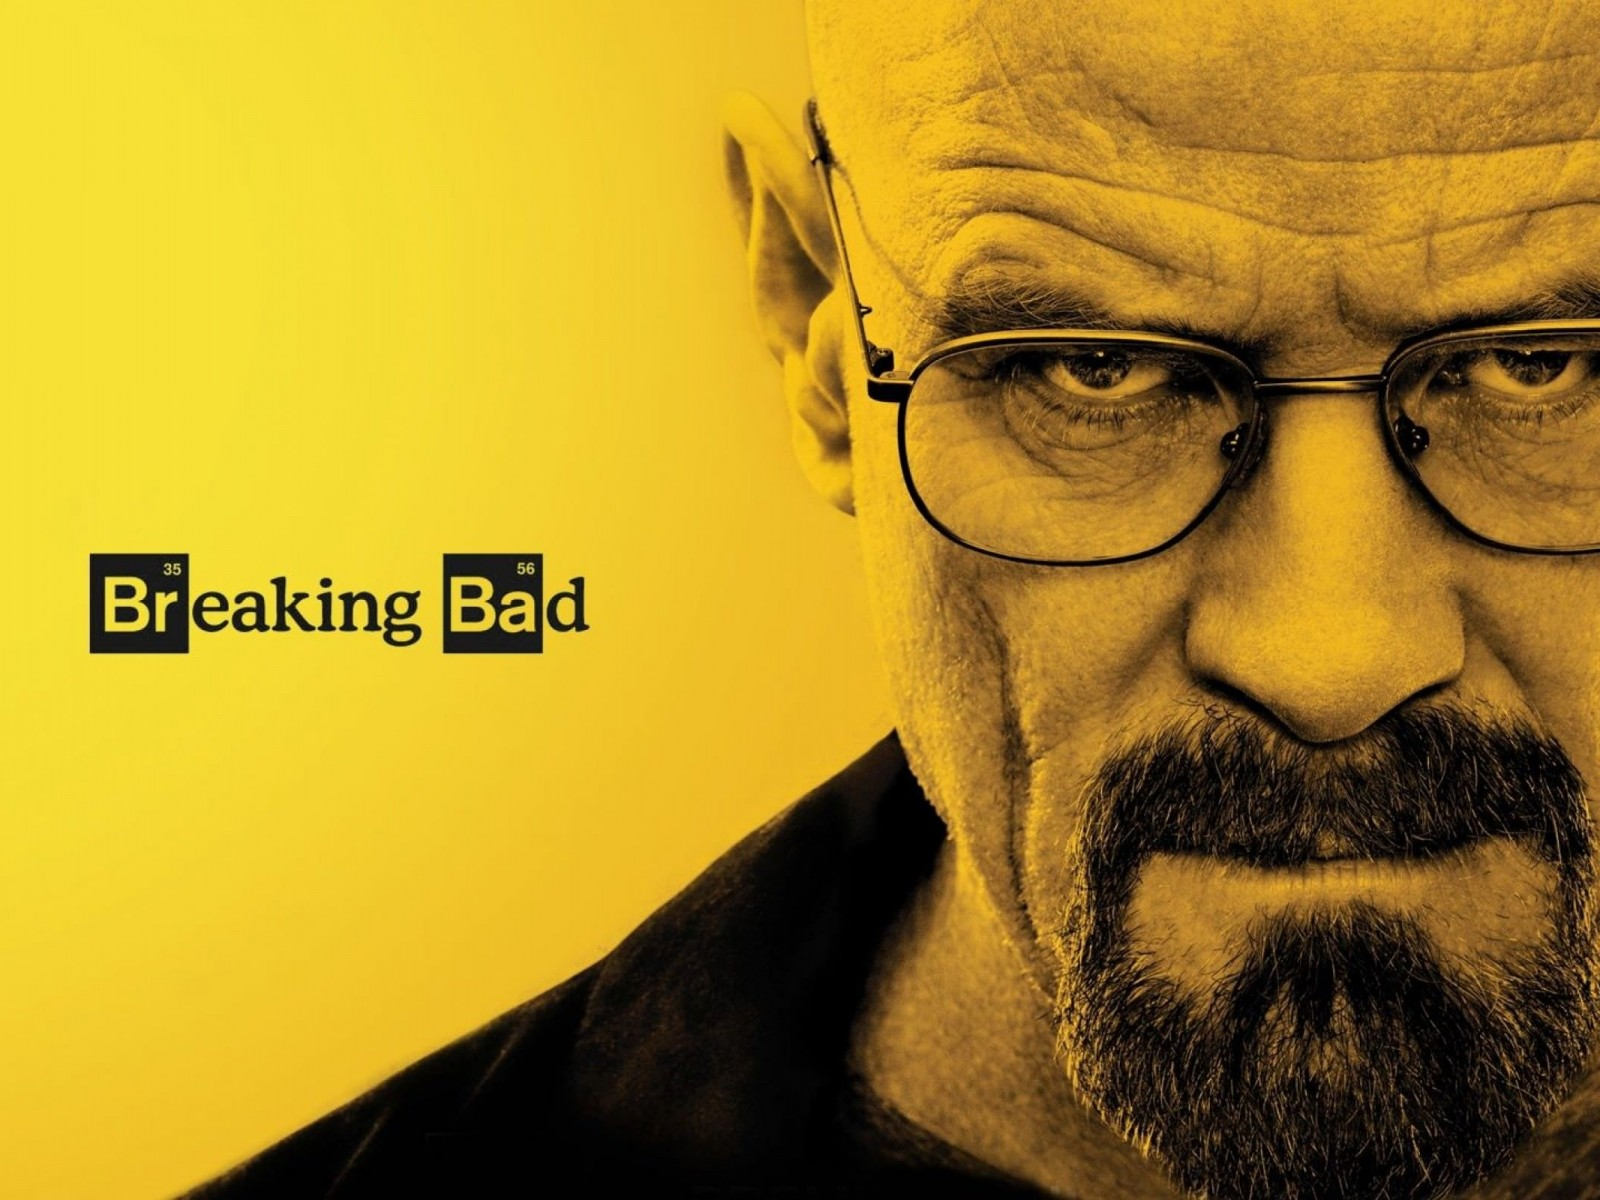 Breaking Bad - Walter White Wallpaper for Desktop 1600x1200